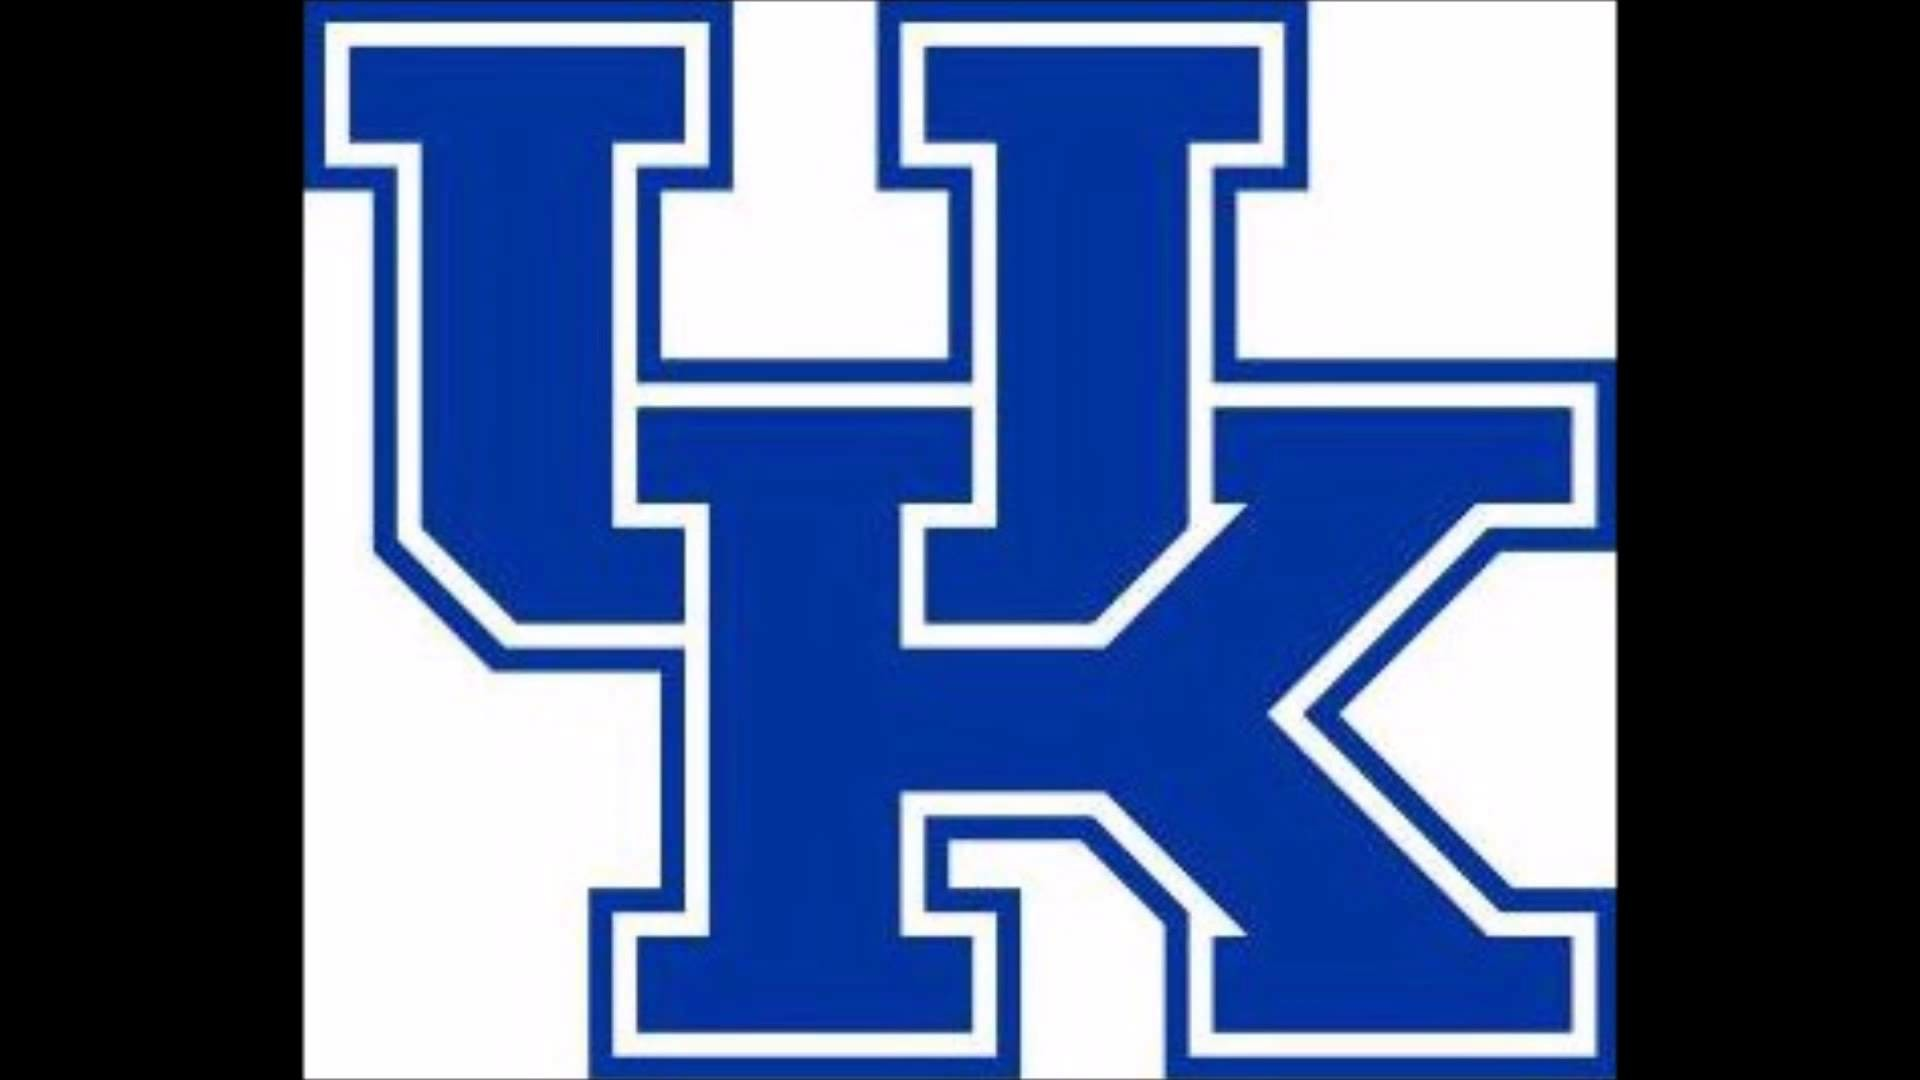 1920x1080 HQ Kentucky Wildcats Wallpapers | File 69.13Kb